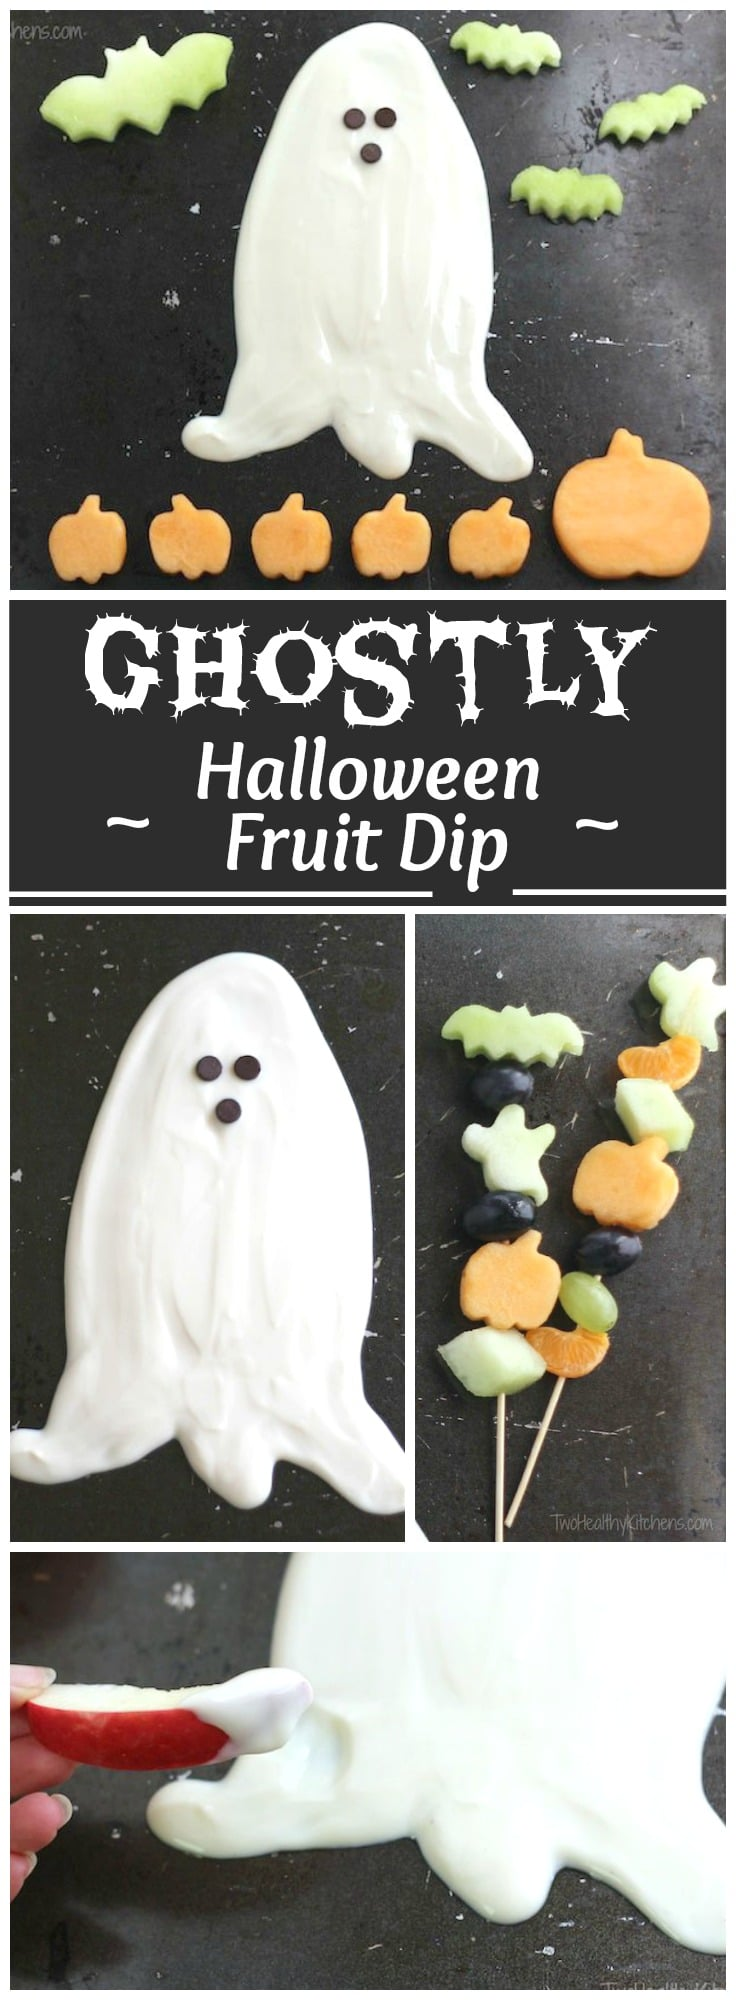 Just 3 ingredients! A quick, easy, healthy fruit dip – perfect for Halloween parties and fall snacks! It's a delicious appetizer dip AND a party decoration! | www.TwoHealthyKitchens.com